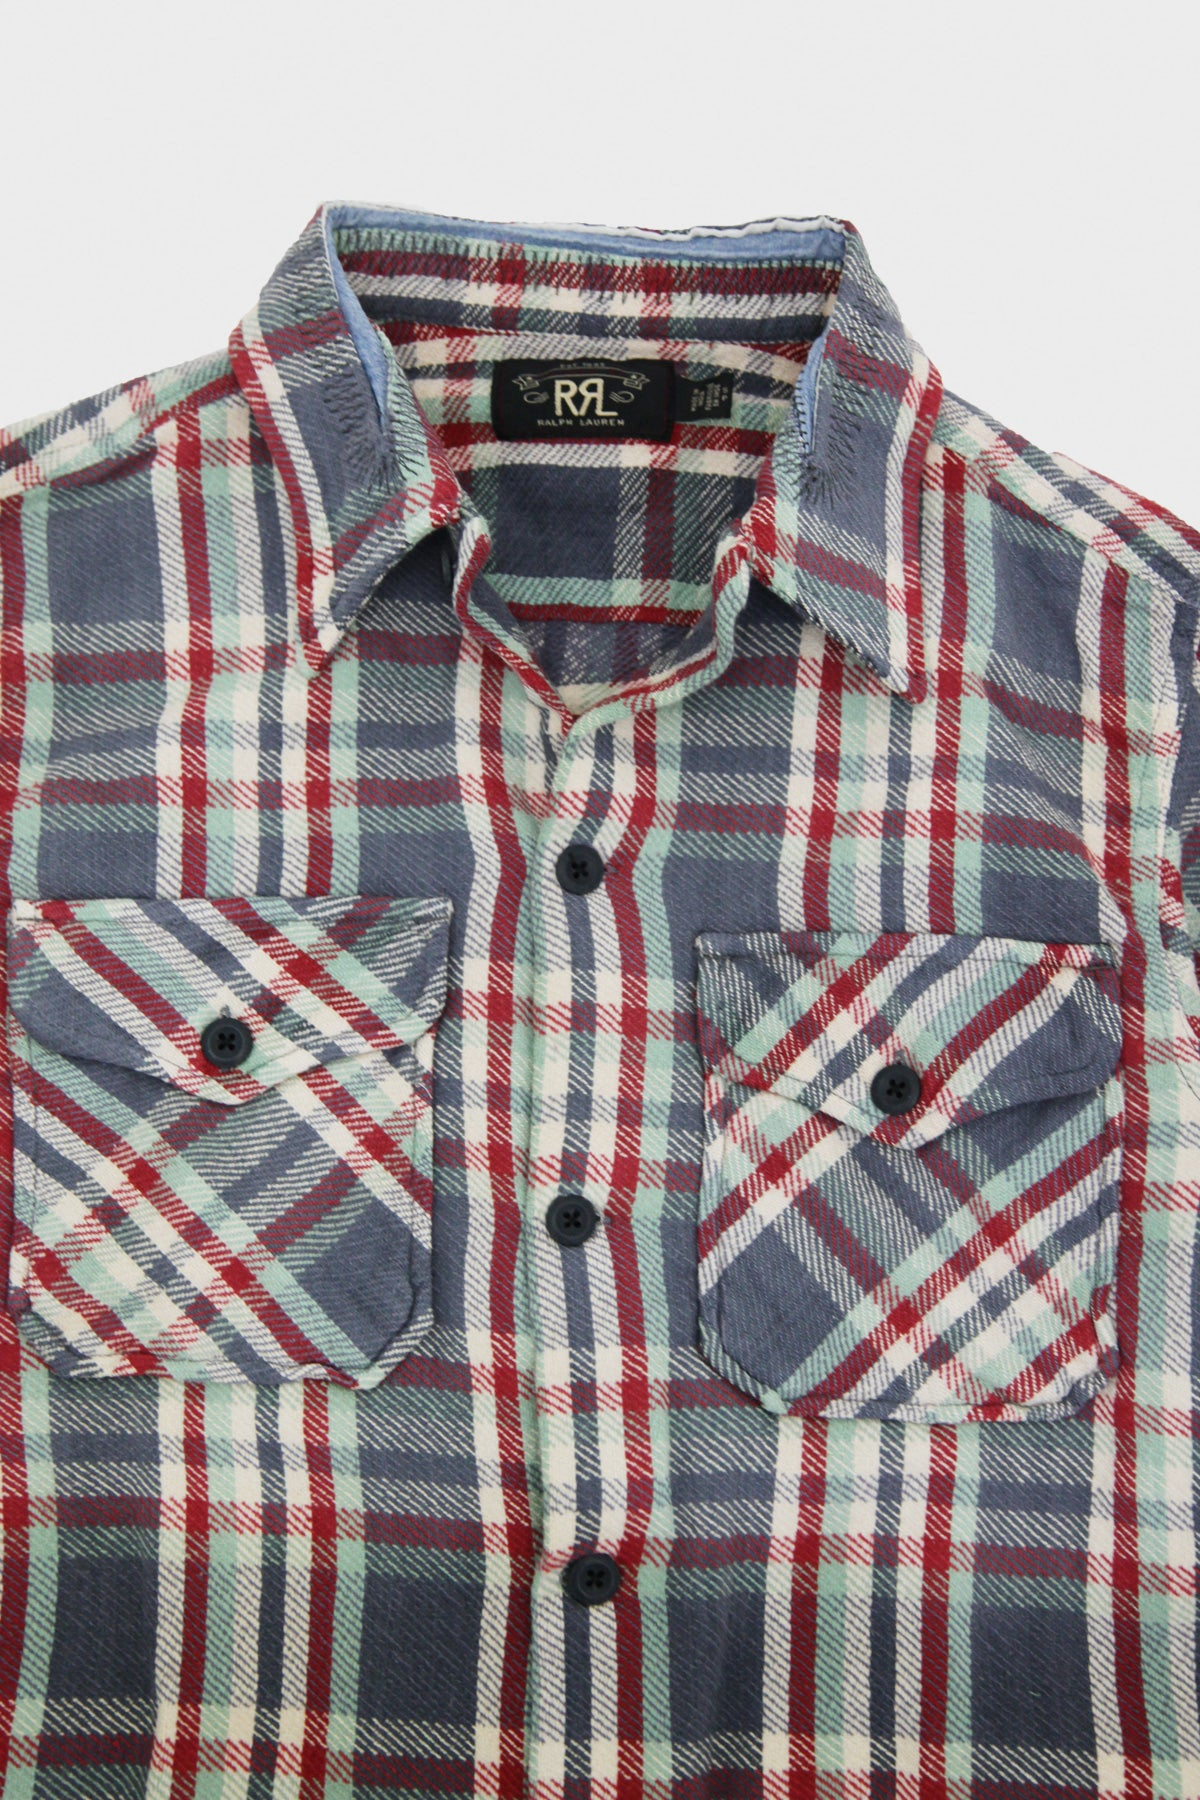 RRL - Distressed Plaid Twill Overshirt - Blue Multi - Canoe Club